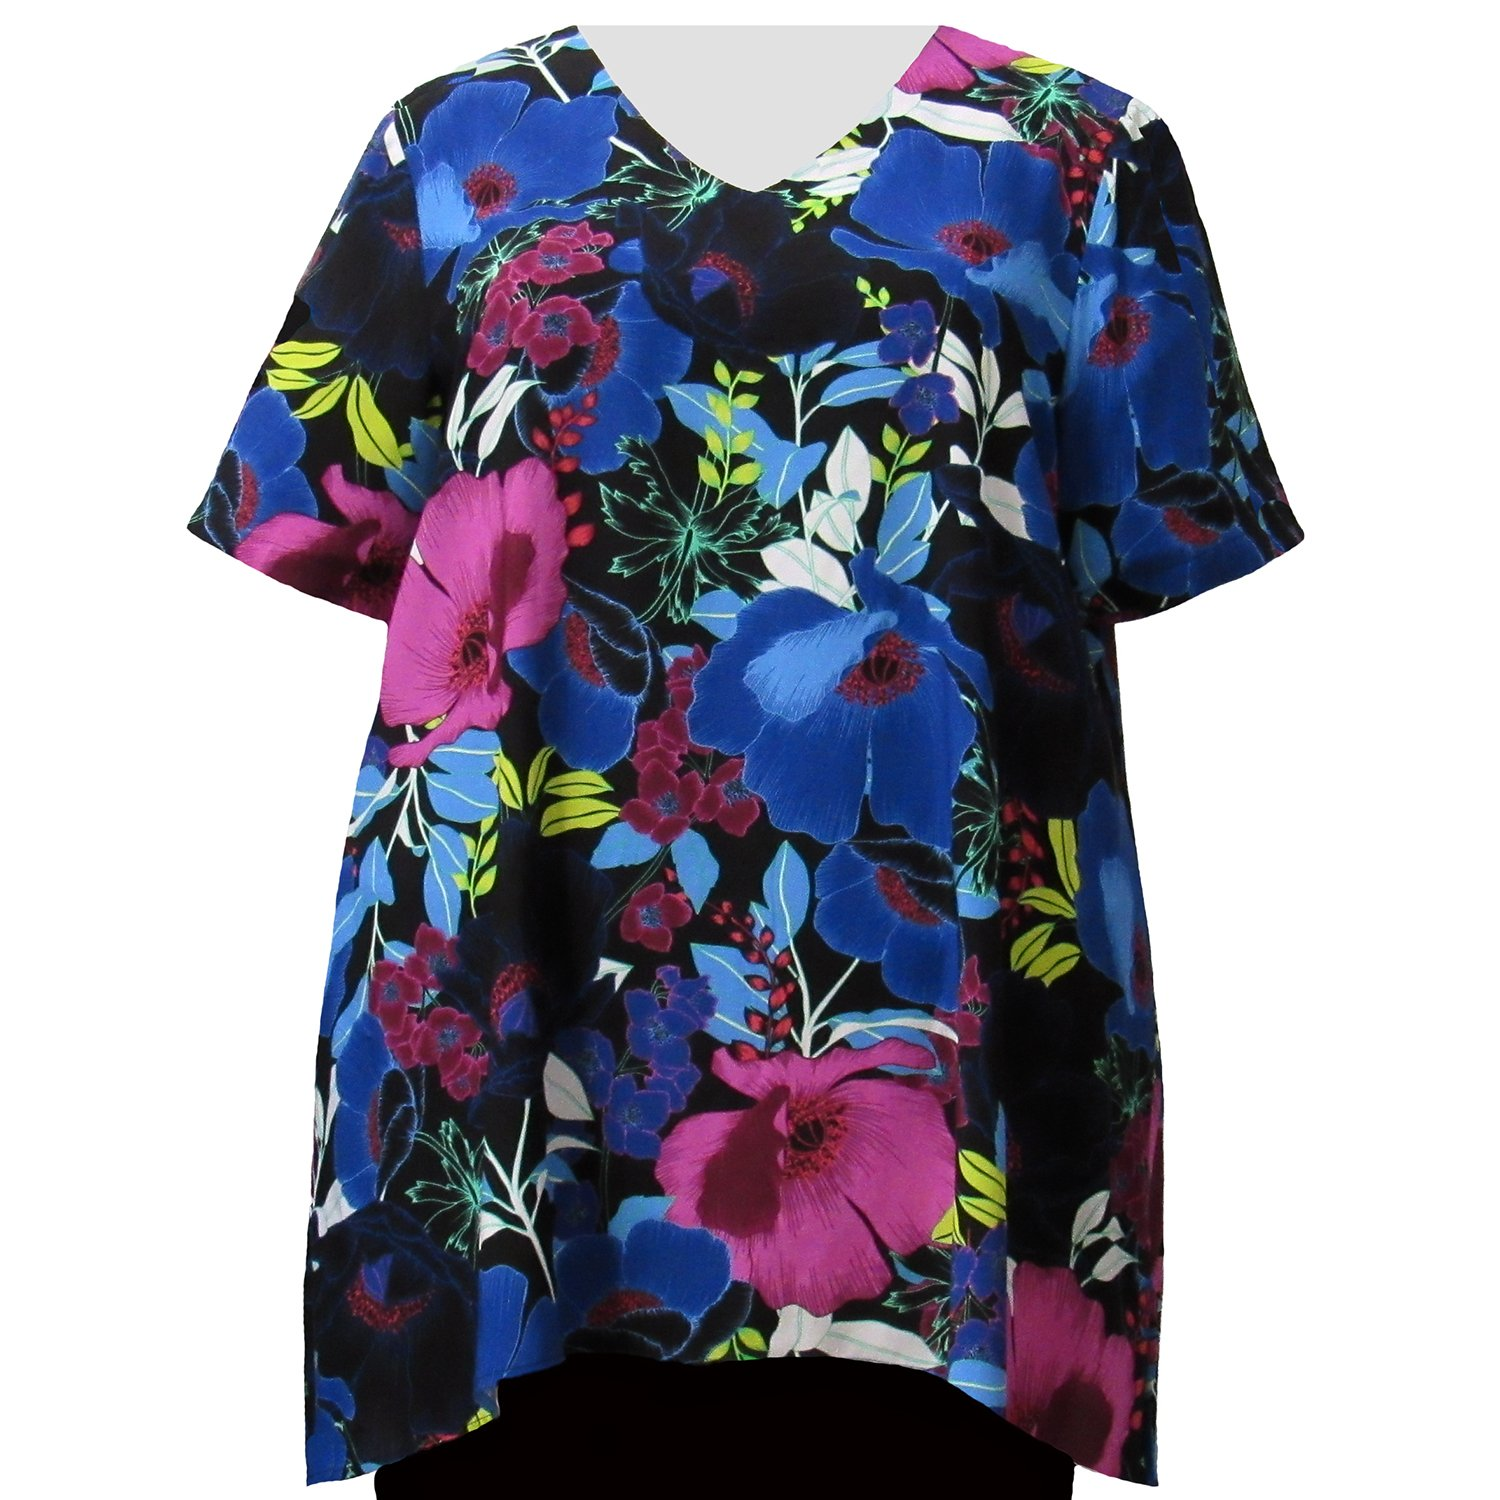 236f1a9c236 A Personal Touch Vibrant Blossoms Women s Plus Size Top at Amazon Women s  Clothing store